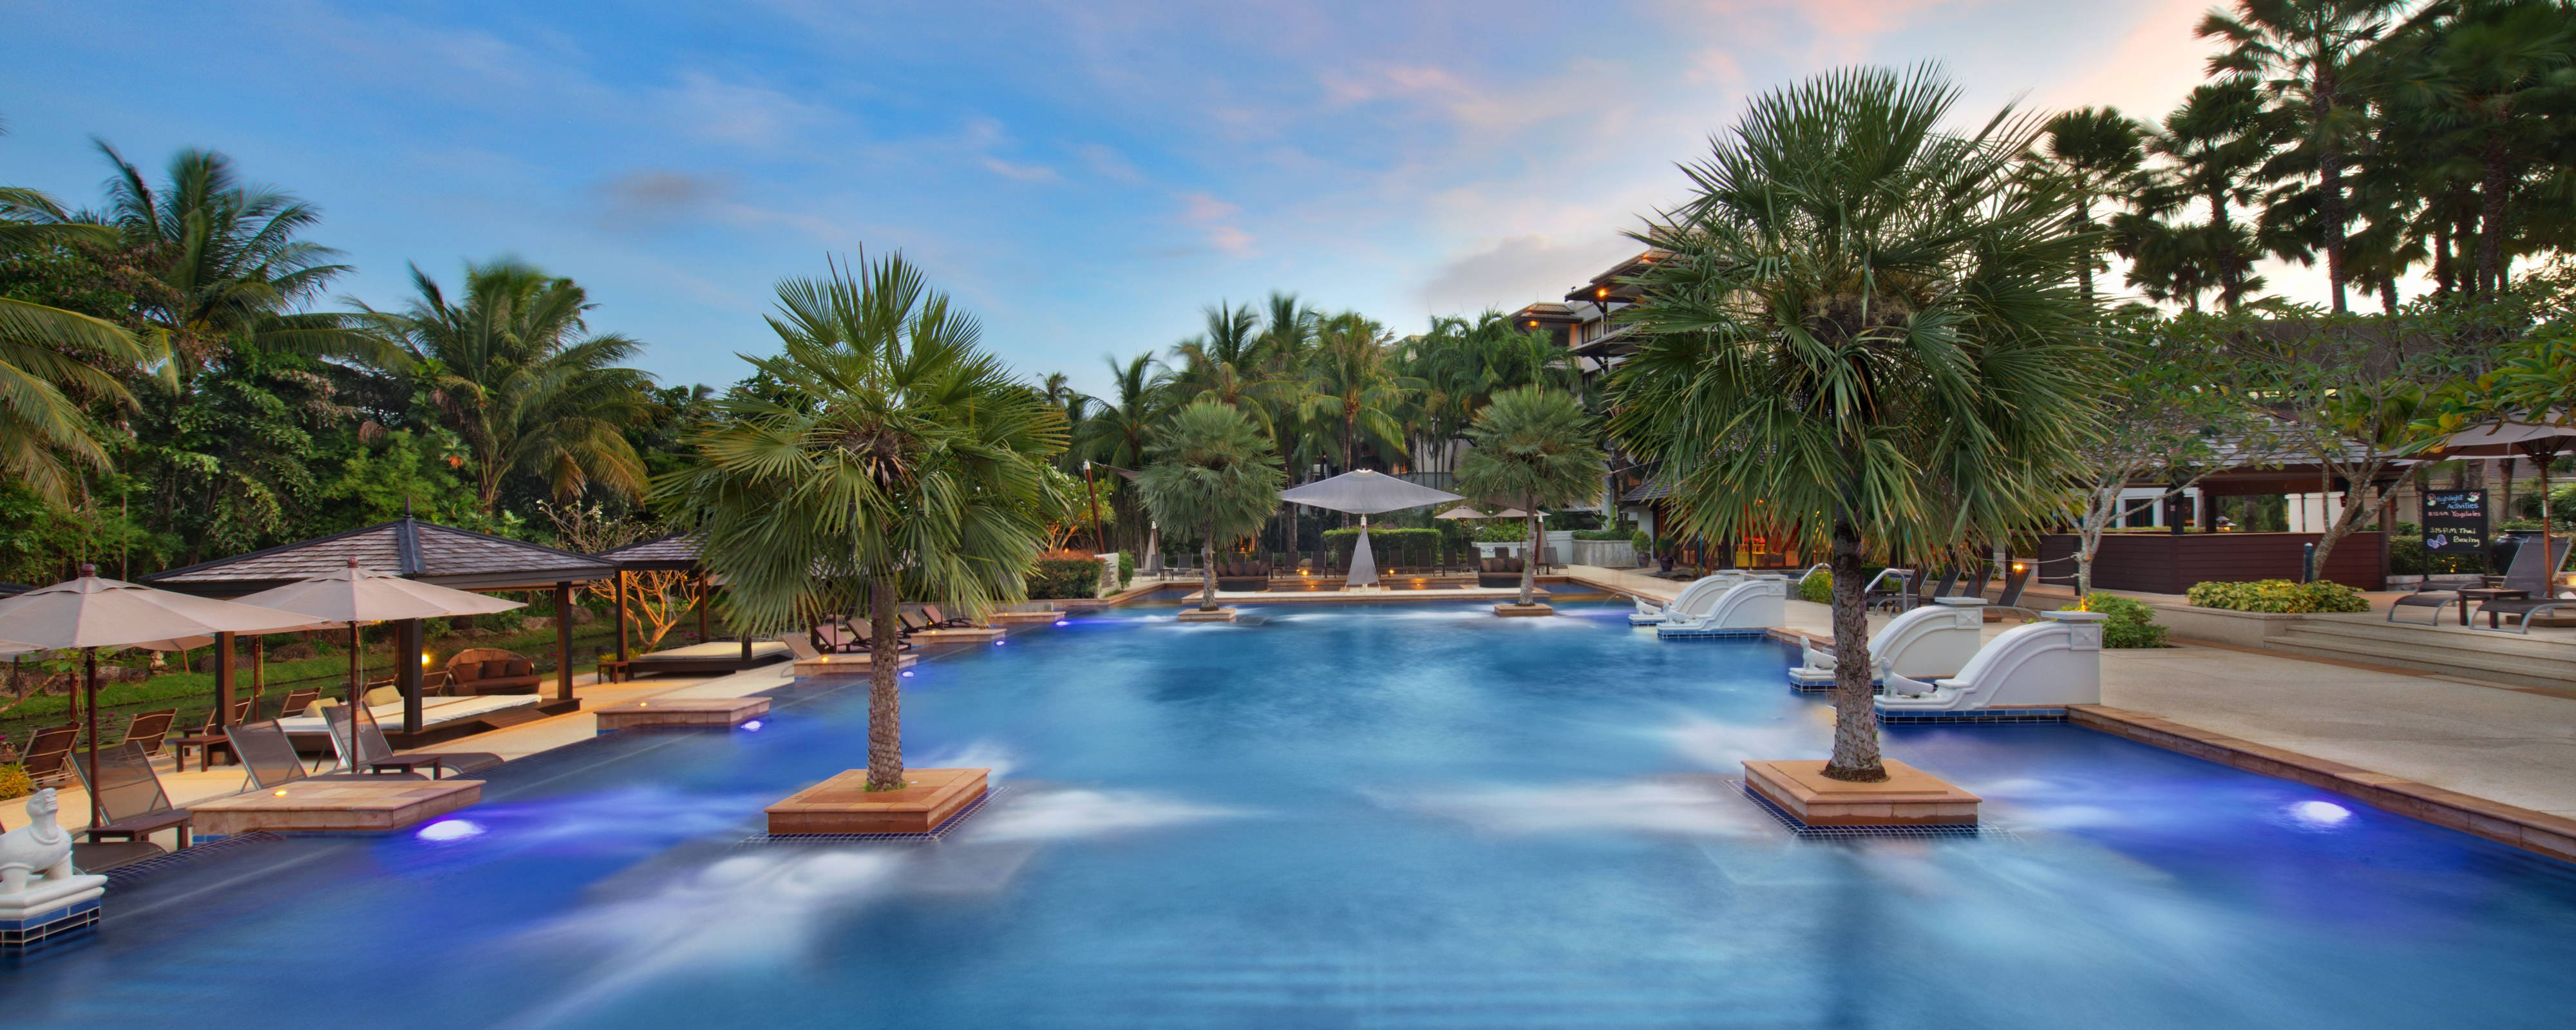 Mai Khao Resort with Outdoor Pool  Gym  Marriotts Mai